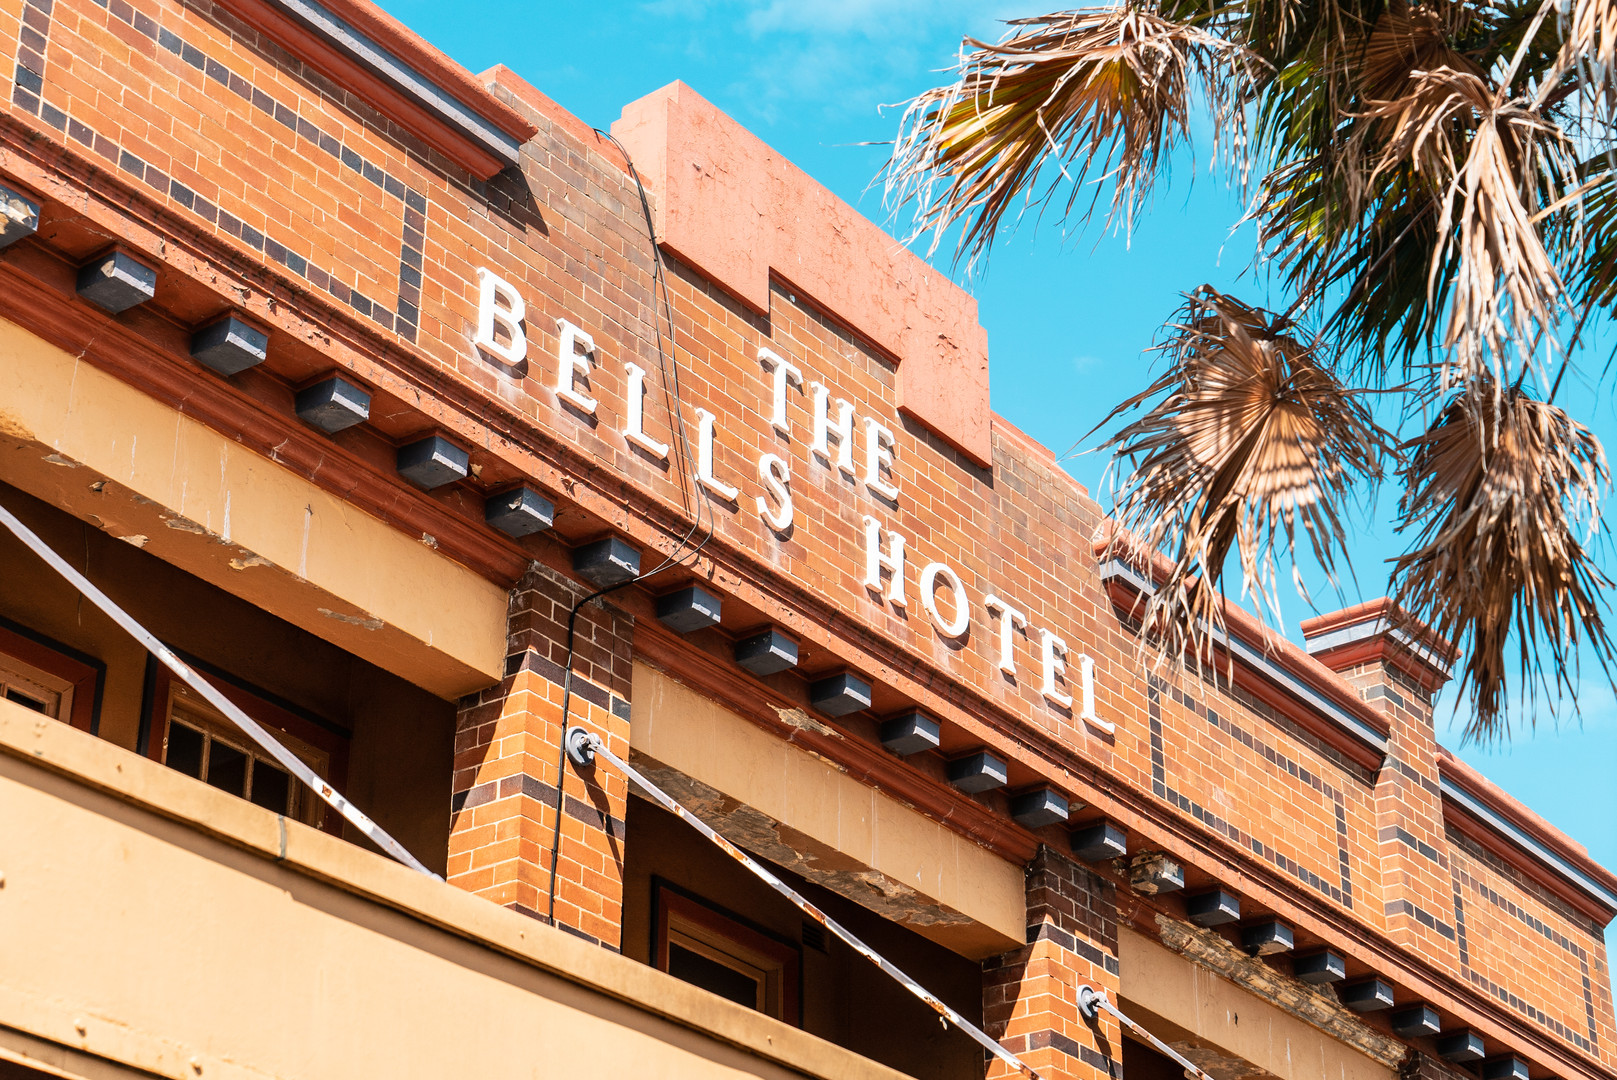 The Bells Hotel